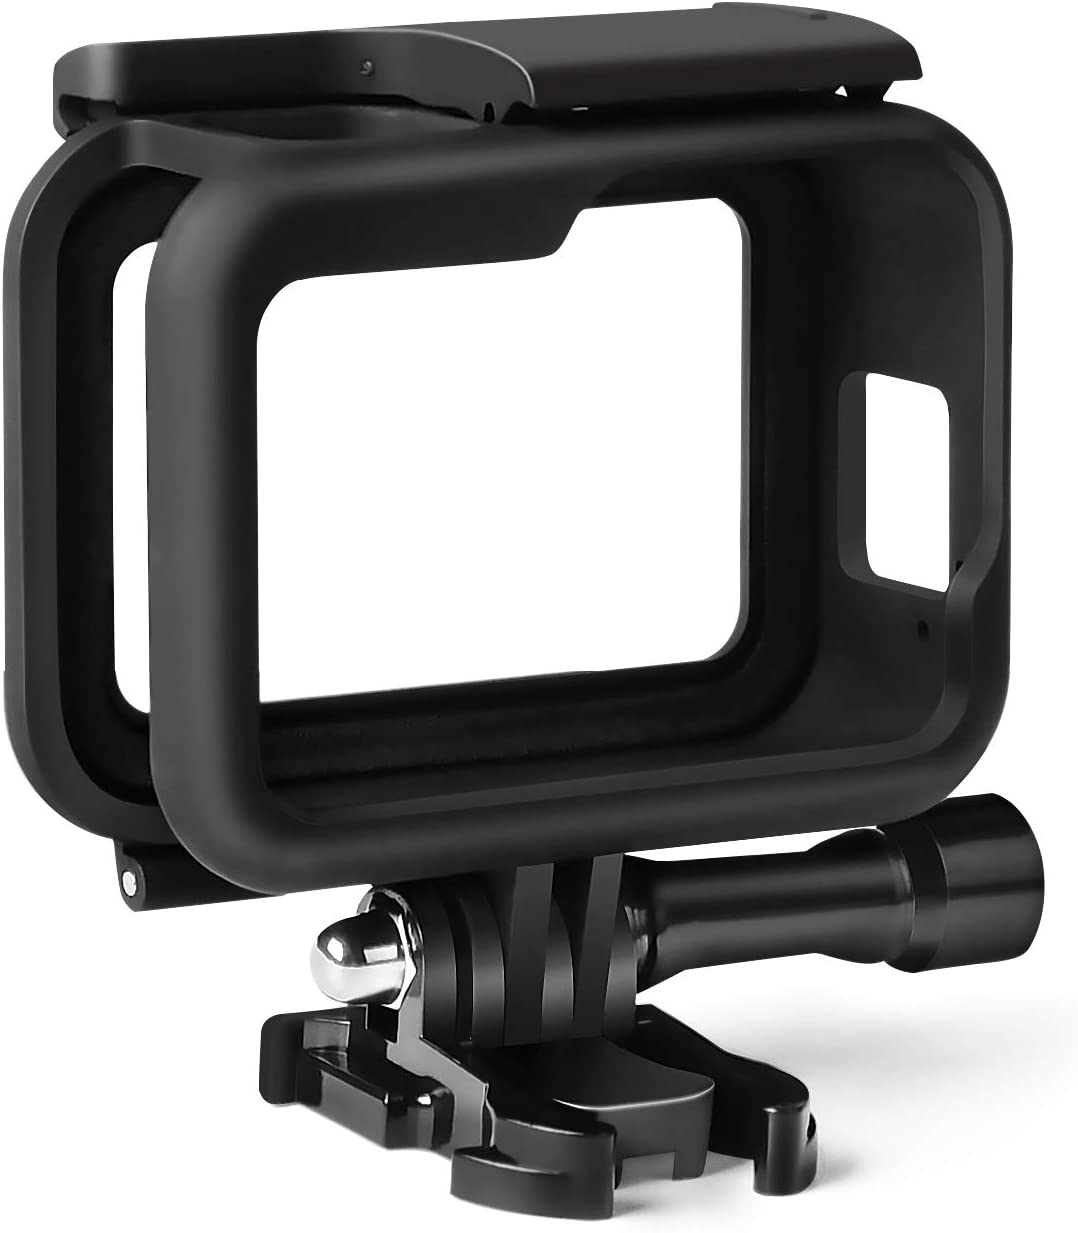 Color : Black ZQ House Standard Border Frame Mount Protective Housing with Screw for DJI Osmo Action